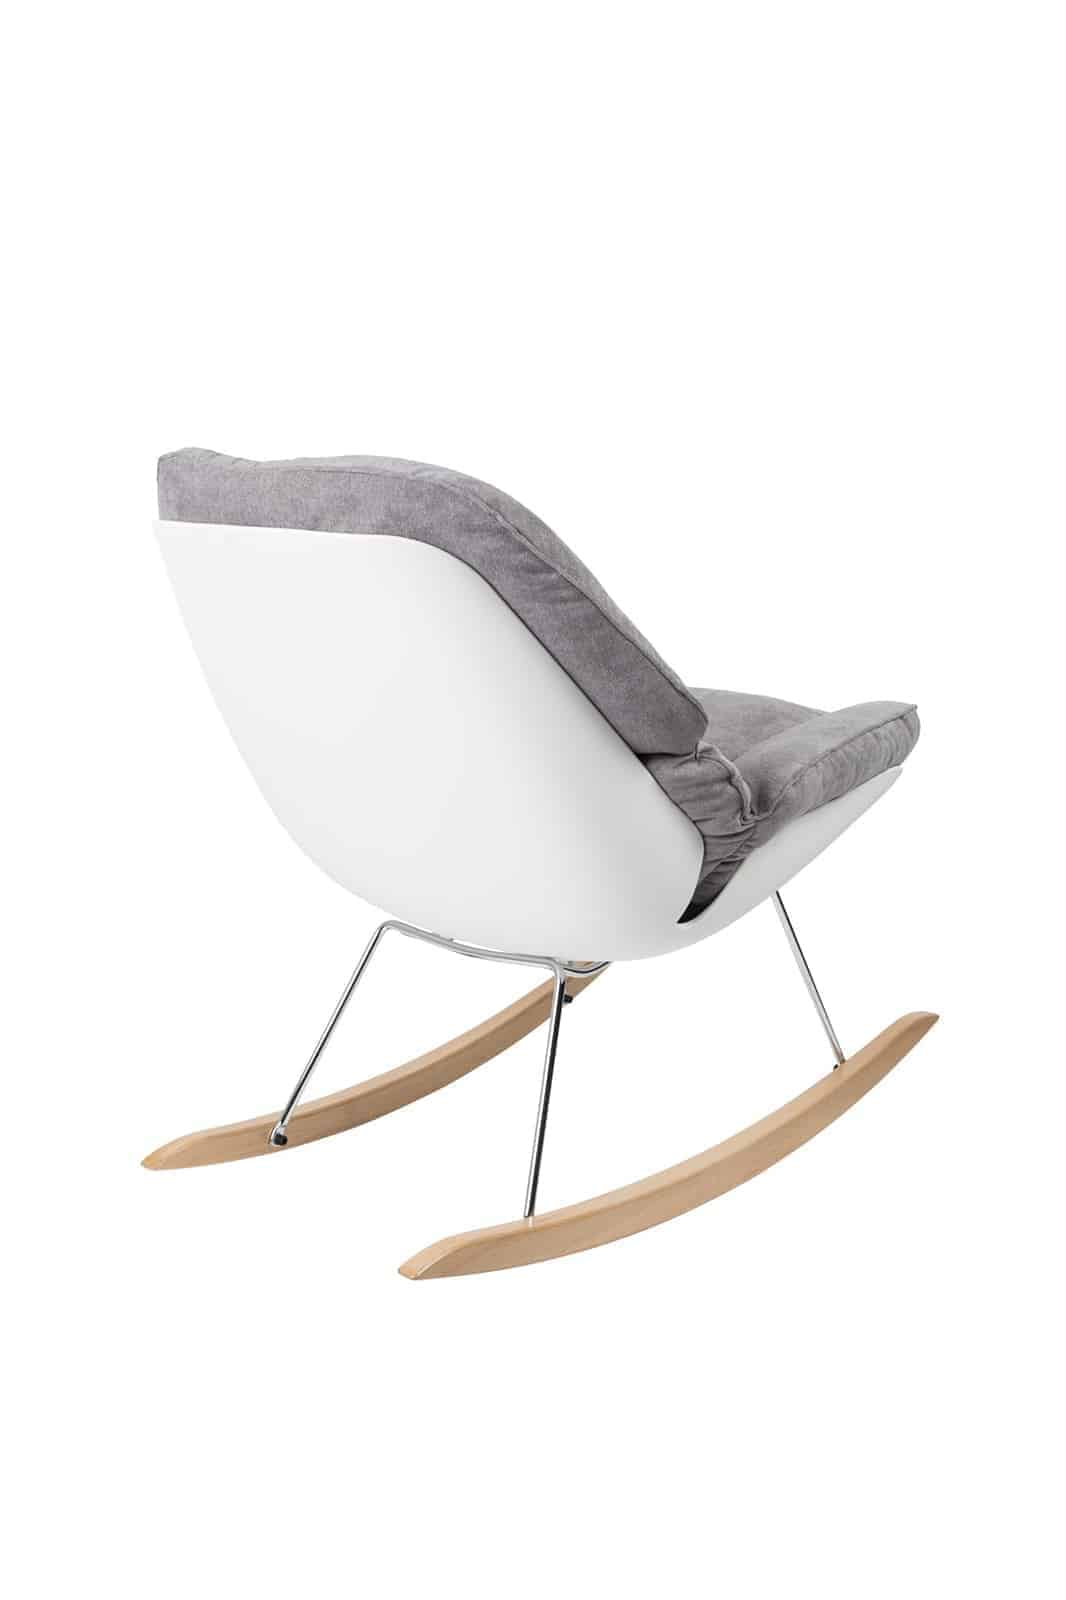 back view of grey rocky light chair